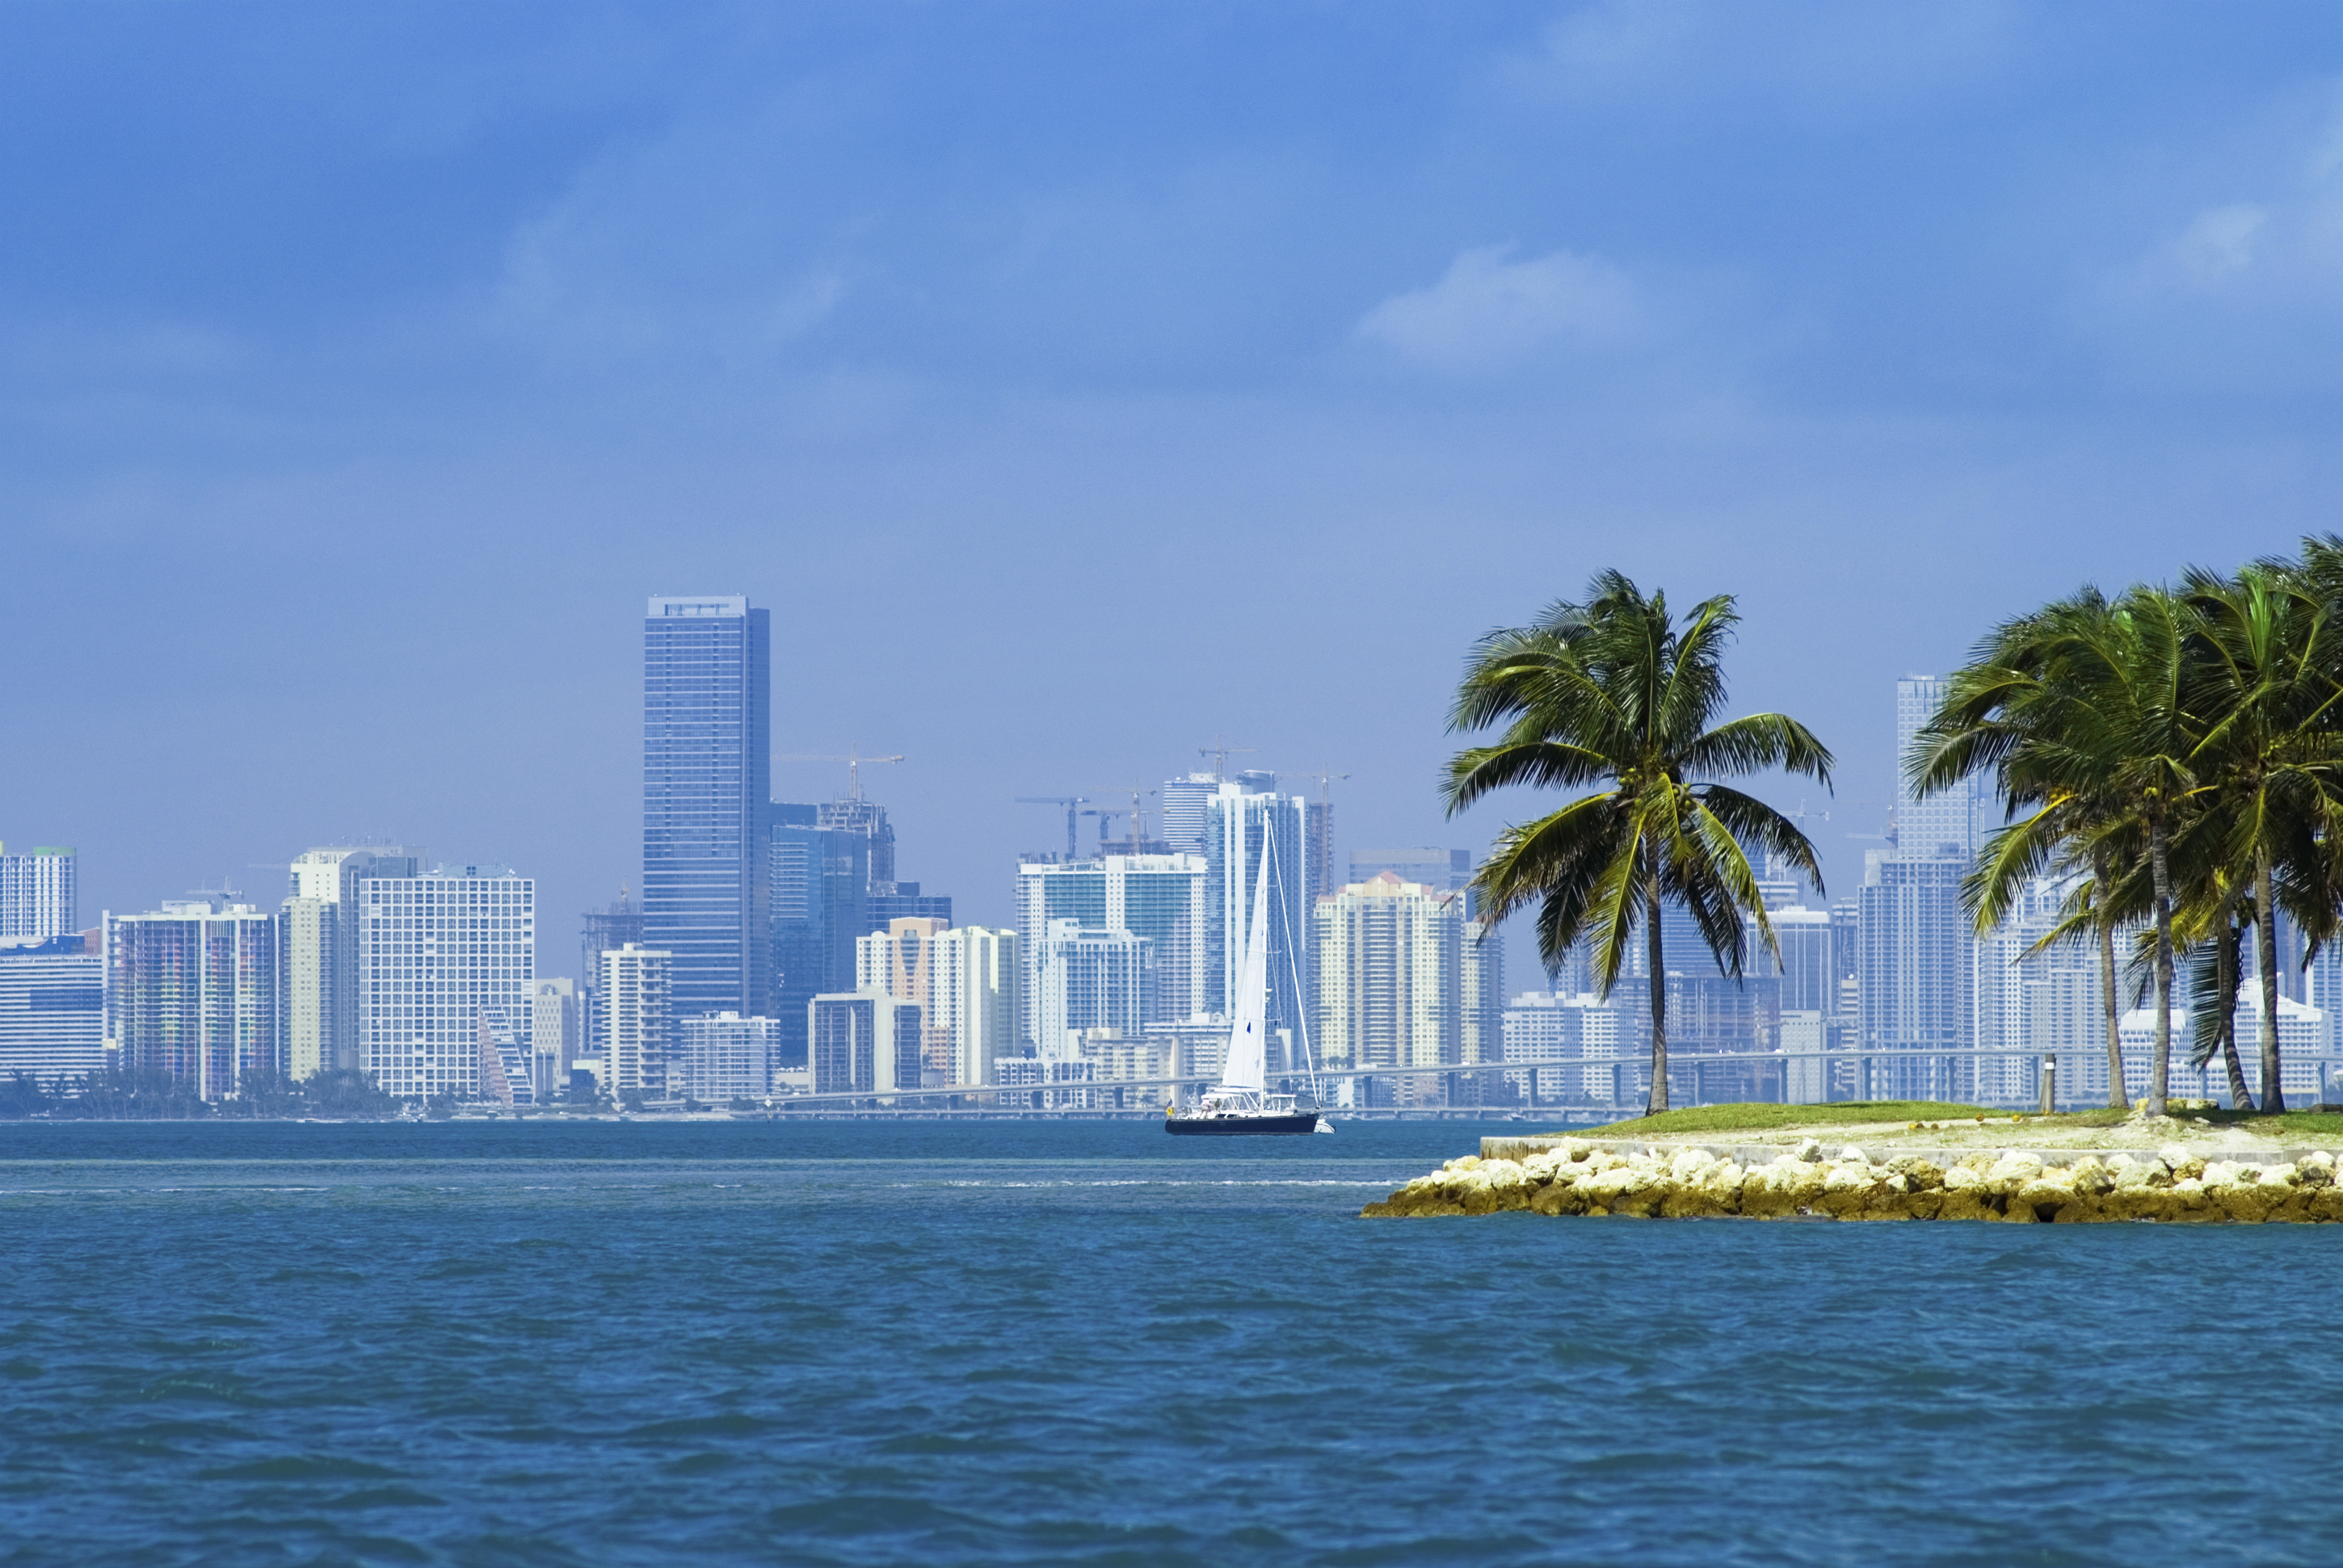 biscayne bay, with the miami downtown as background